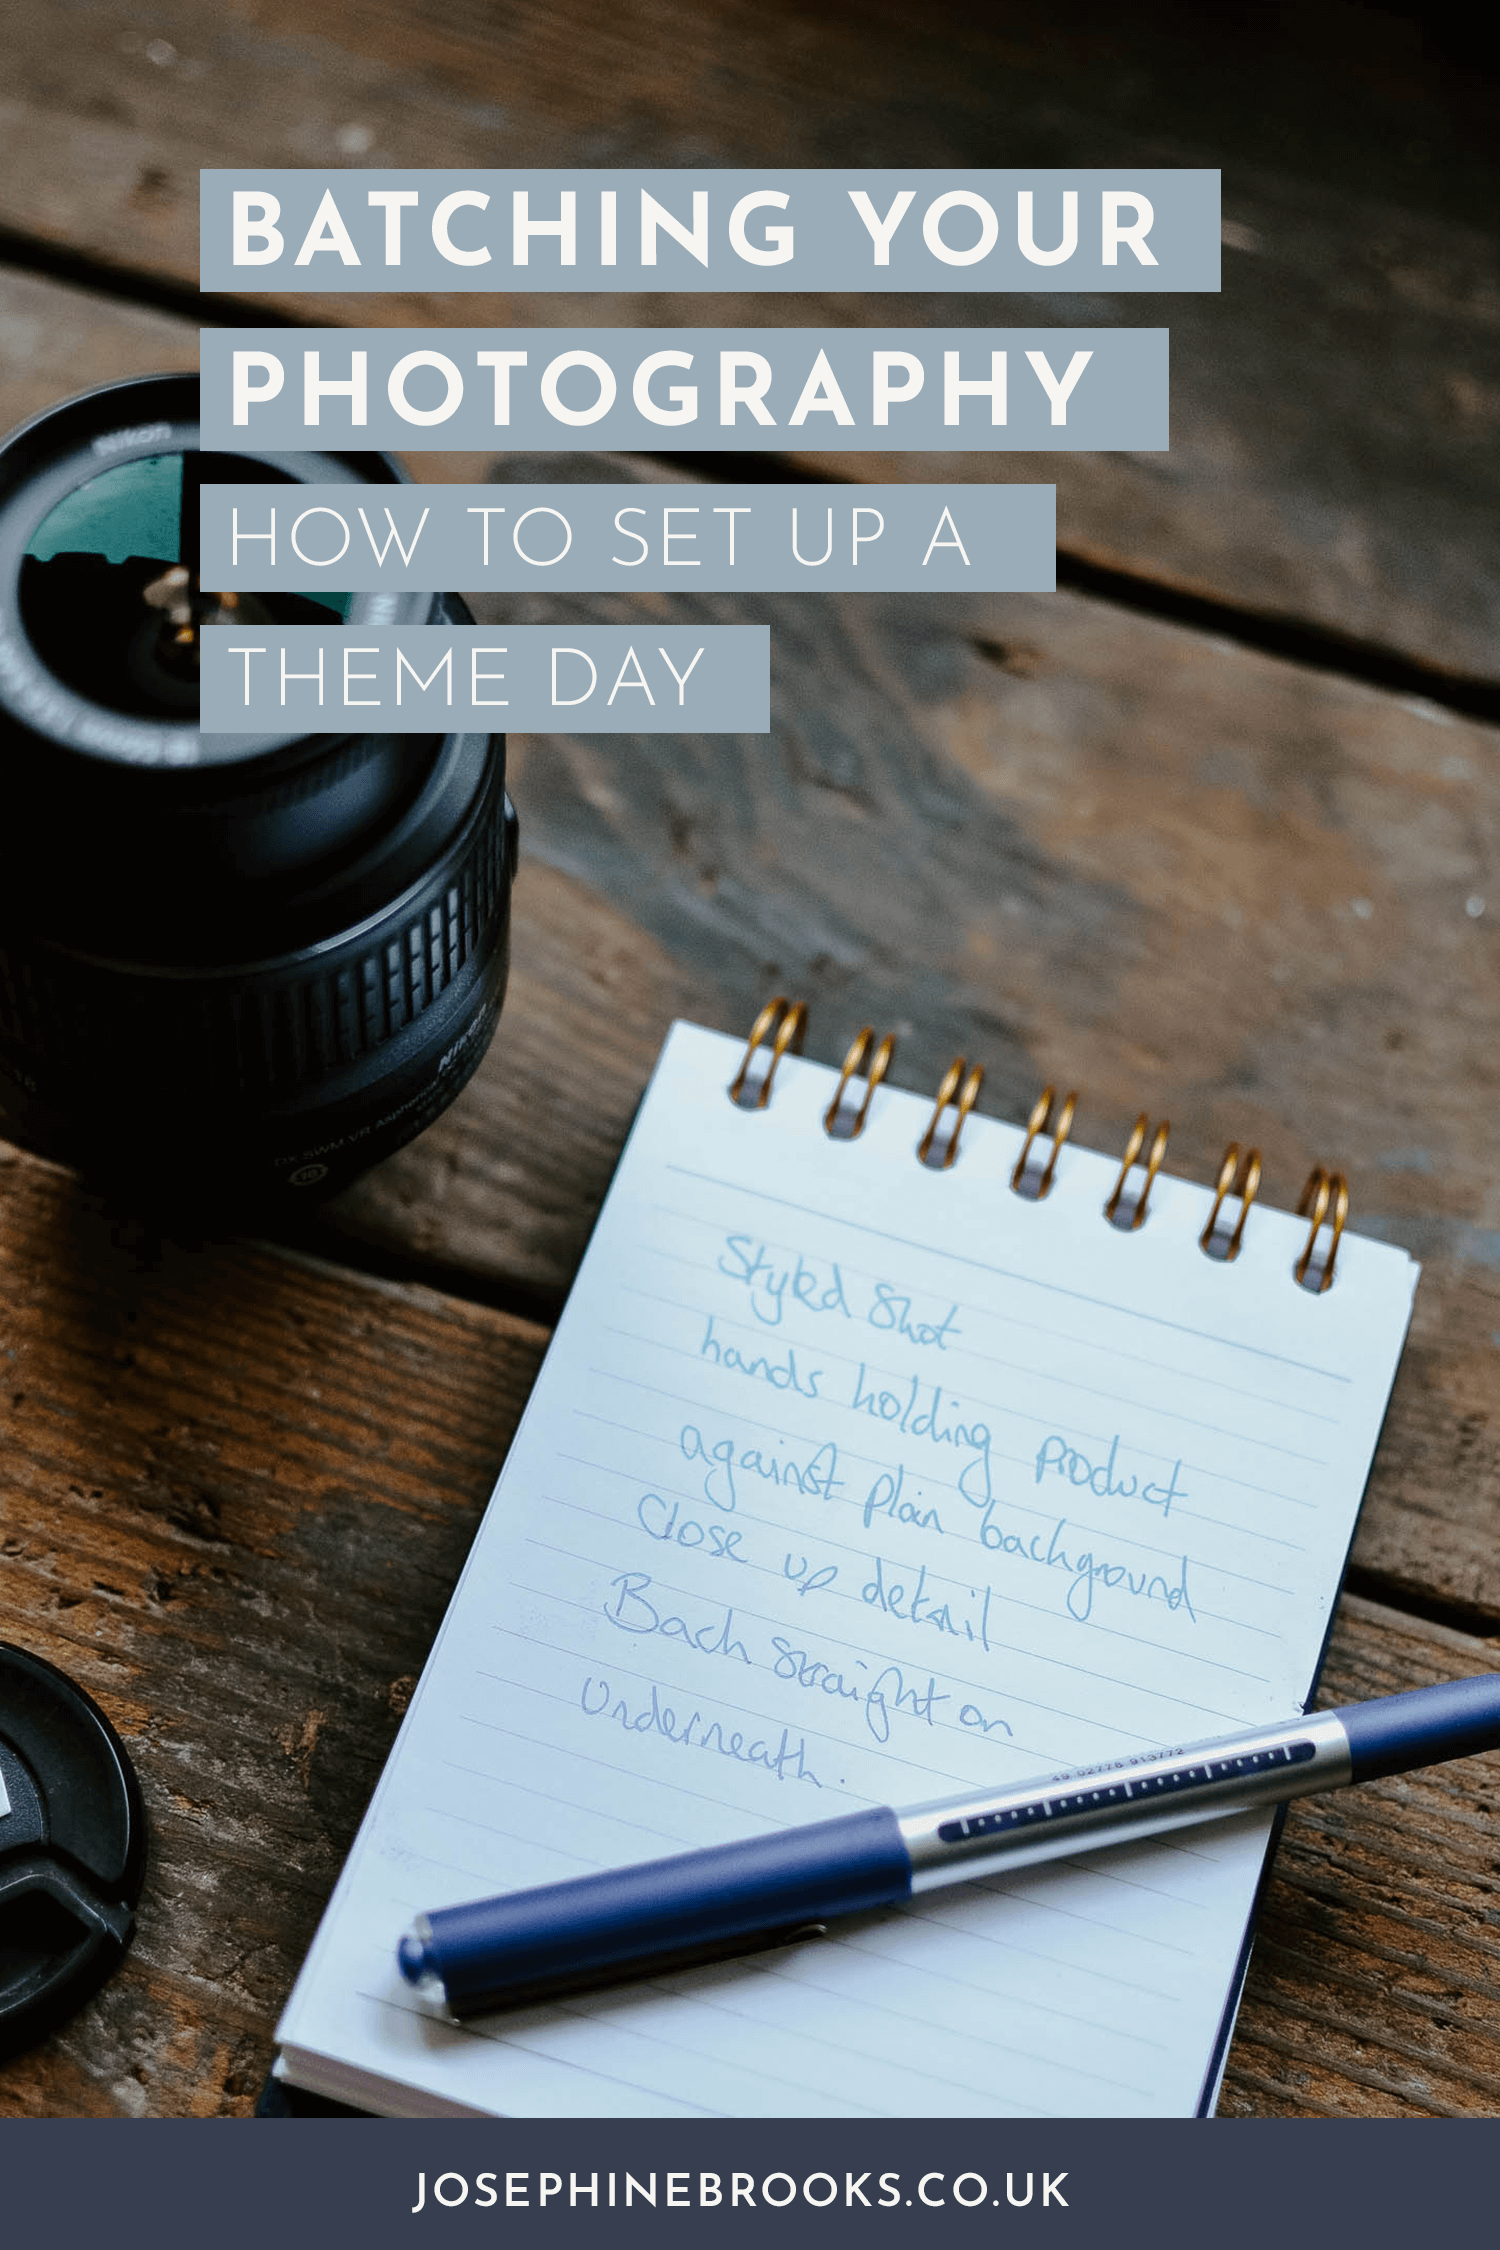 Batching your photography, how to set up a photography theme day, how to plan for a photo theme day, product photography, taking your own product photos, Creative business photography tips | Josephine Brooks